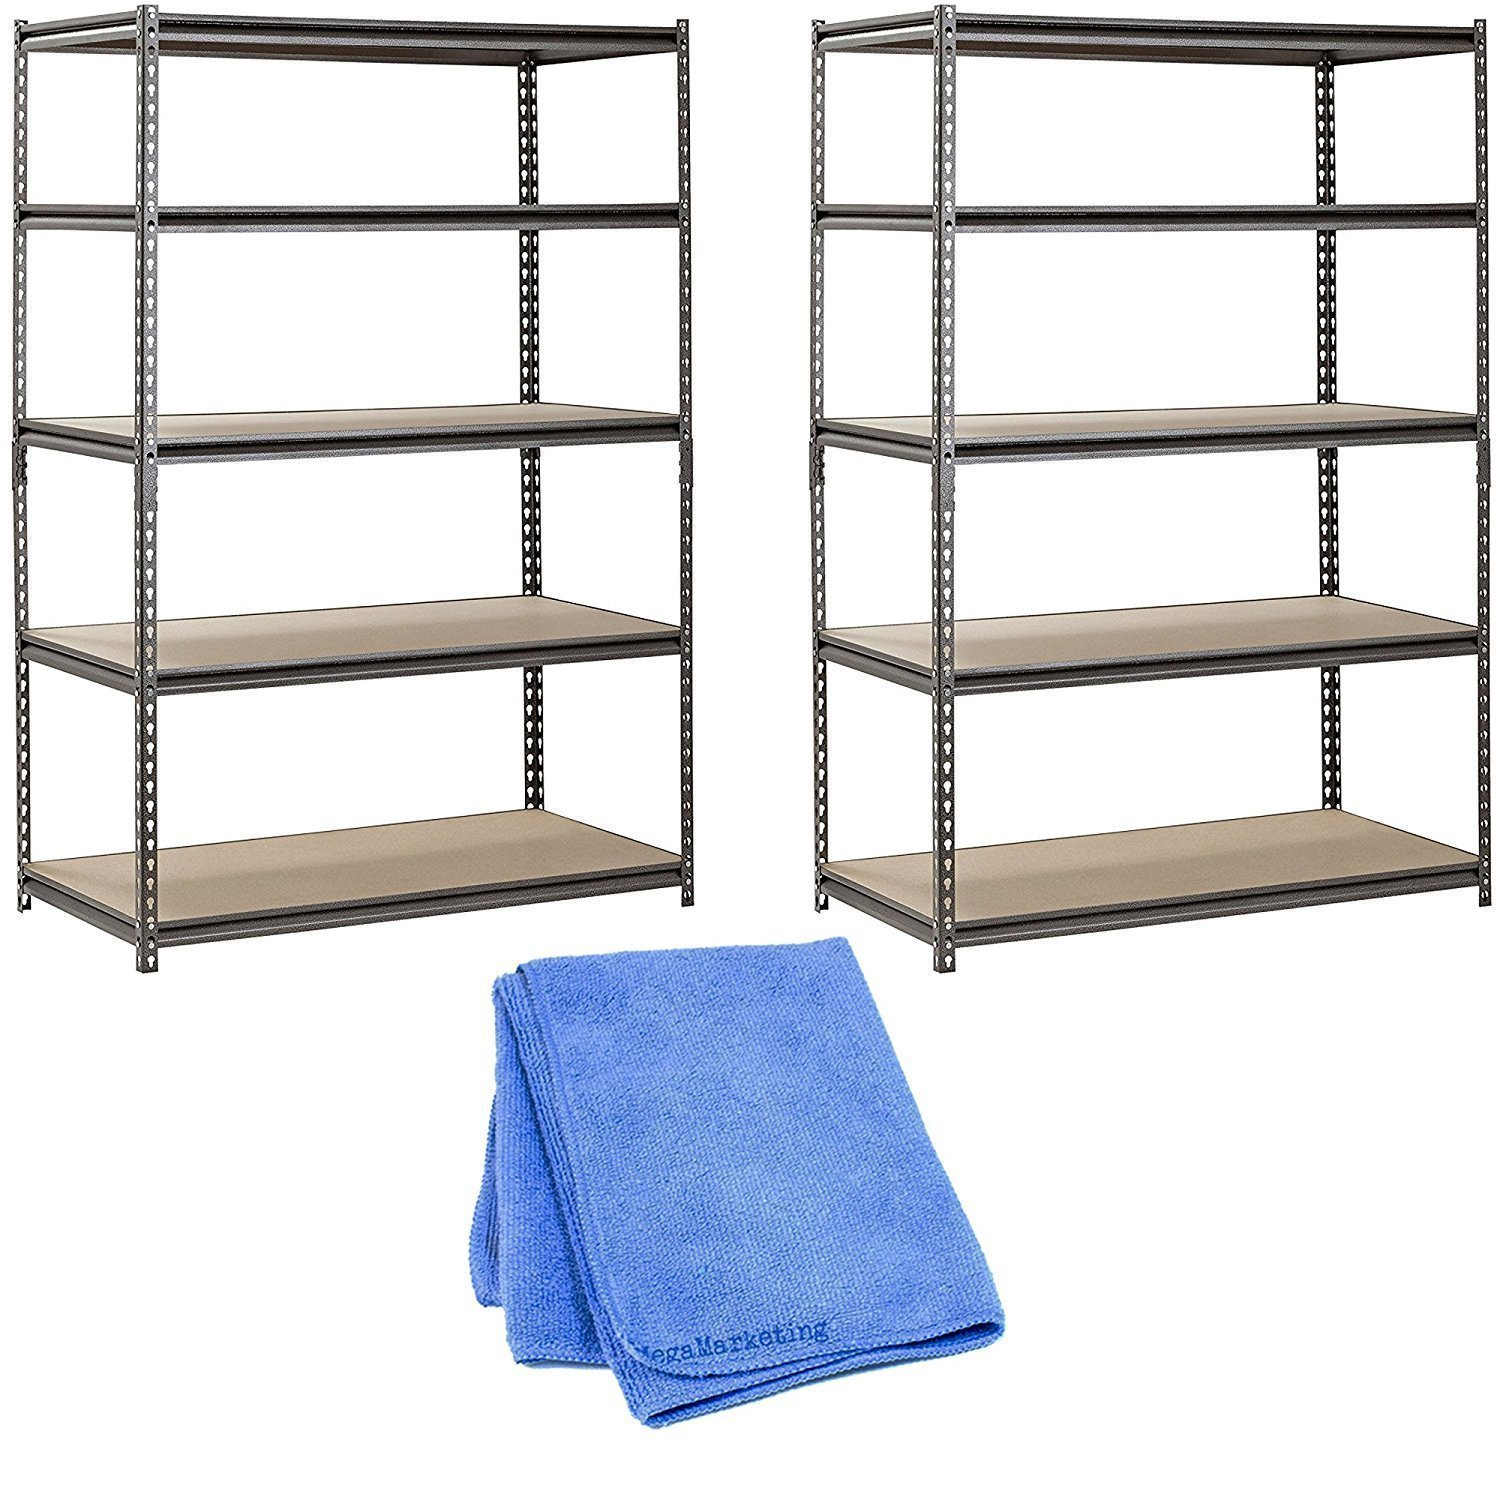 Muscle Rack UR482472PB5PAZ-SV Silver Vein Steel Storage Rack, 5 Adjustable Shelves, 4000 lb. Capacity, 72'' Height x 48'' Width x 24'' Depth (2-Pack) with Towel Cleaner